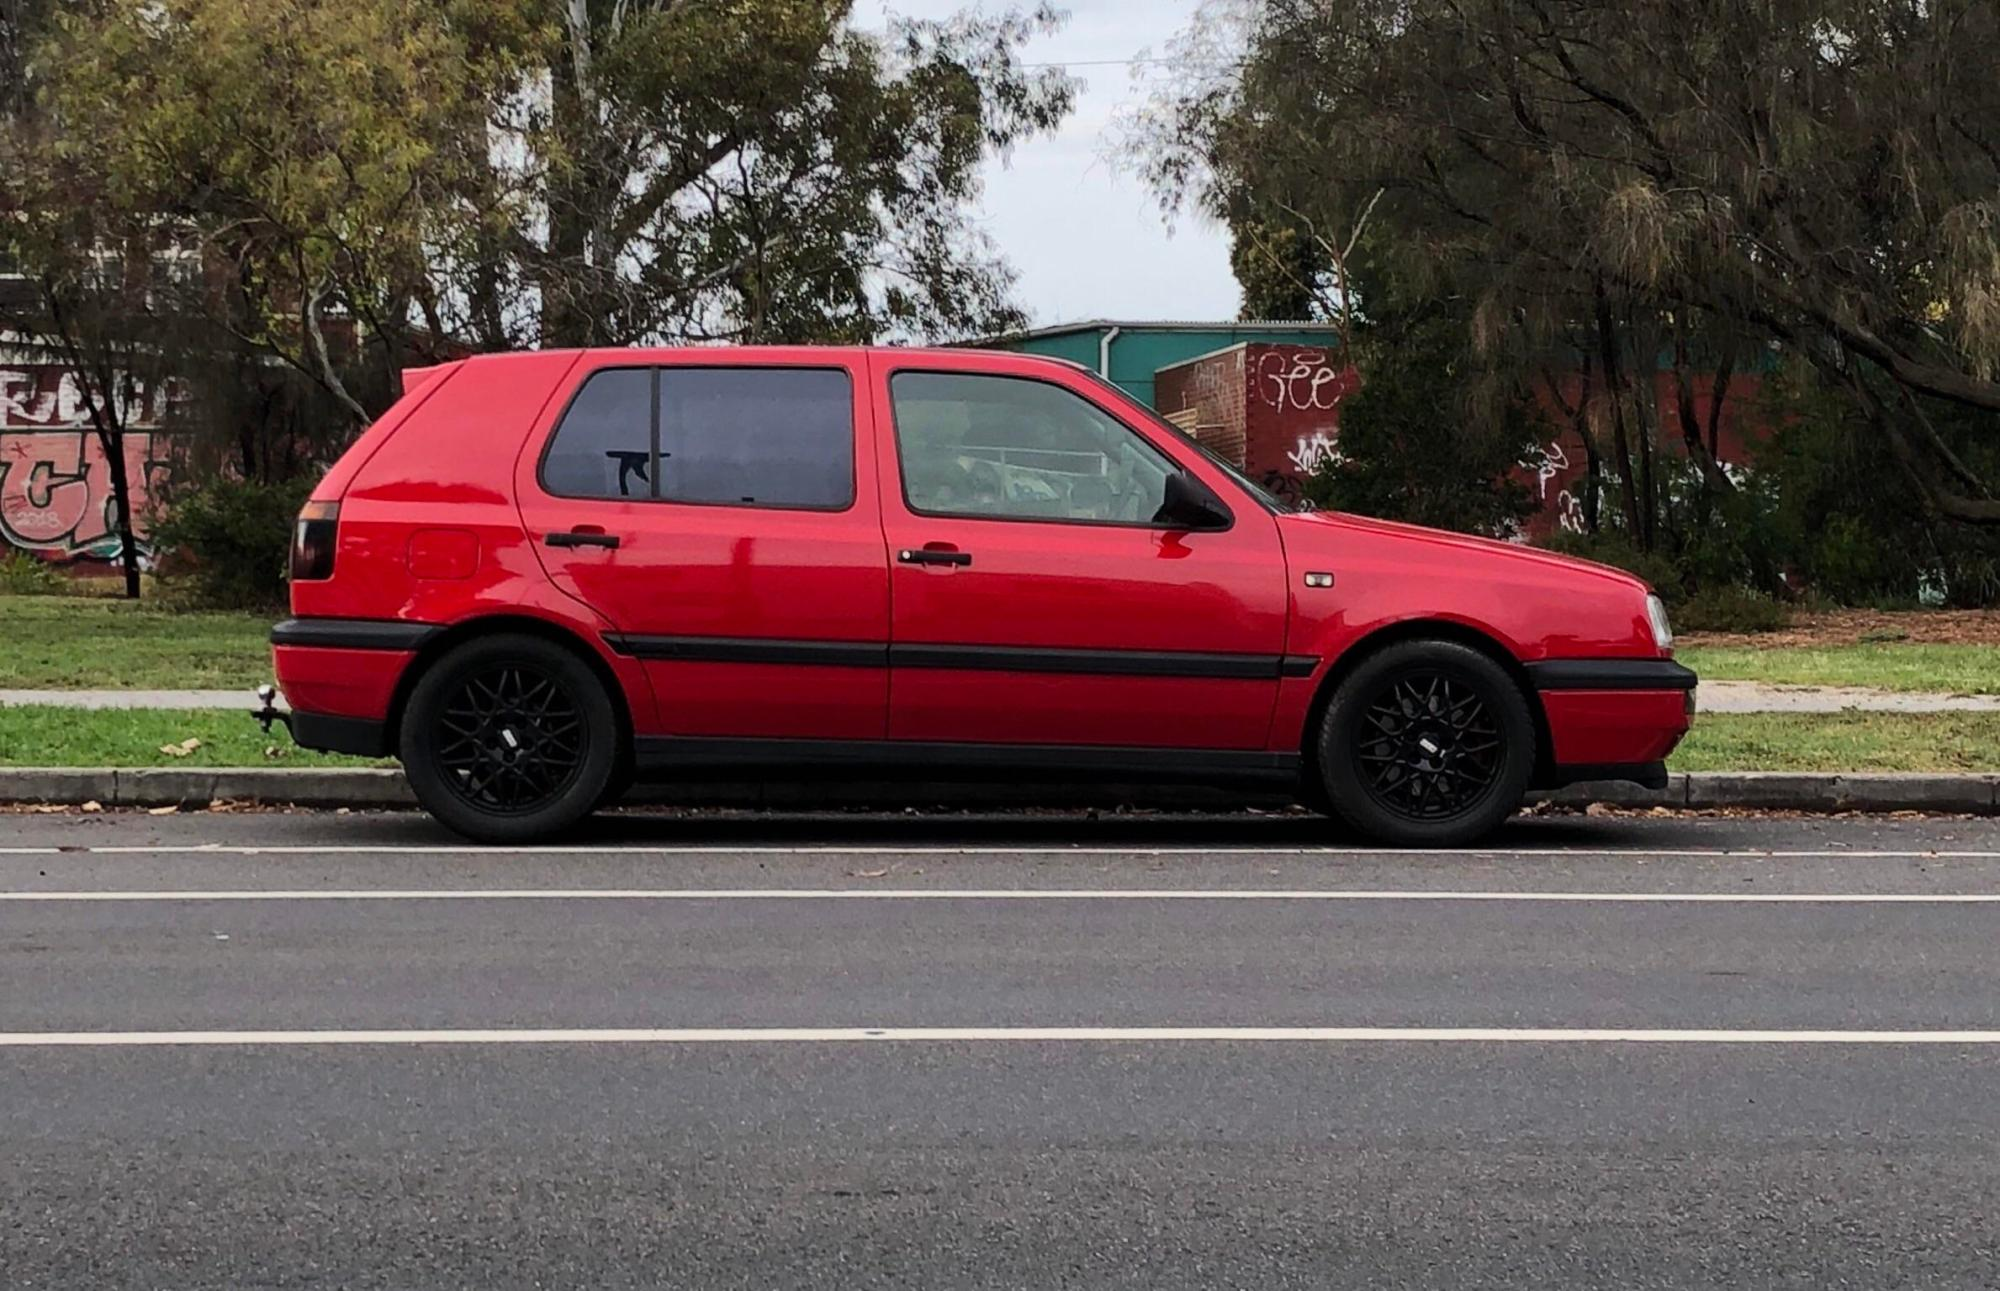 hight resolution of new carjust picked up this 94 vr6 after selling my mk5 gti have dreamt of owning one since i was about 8 finally found the one to buy